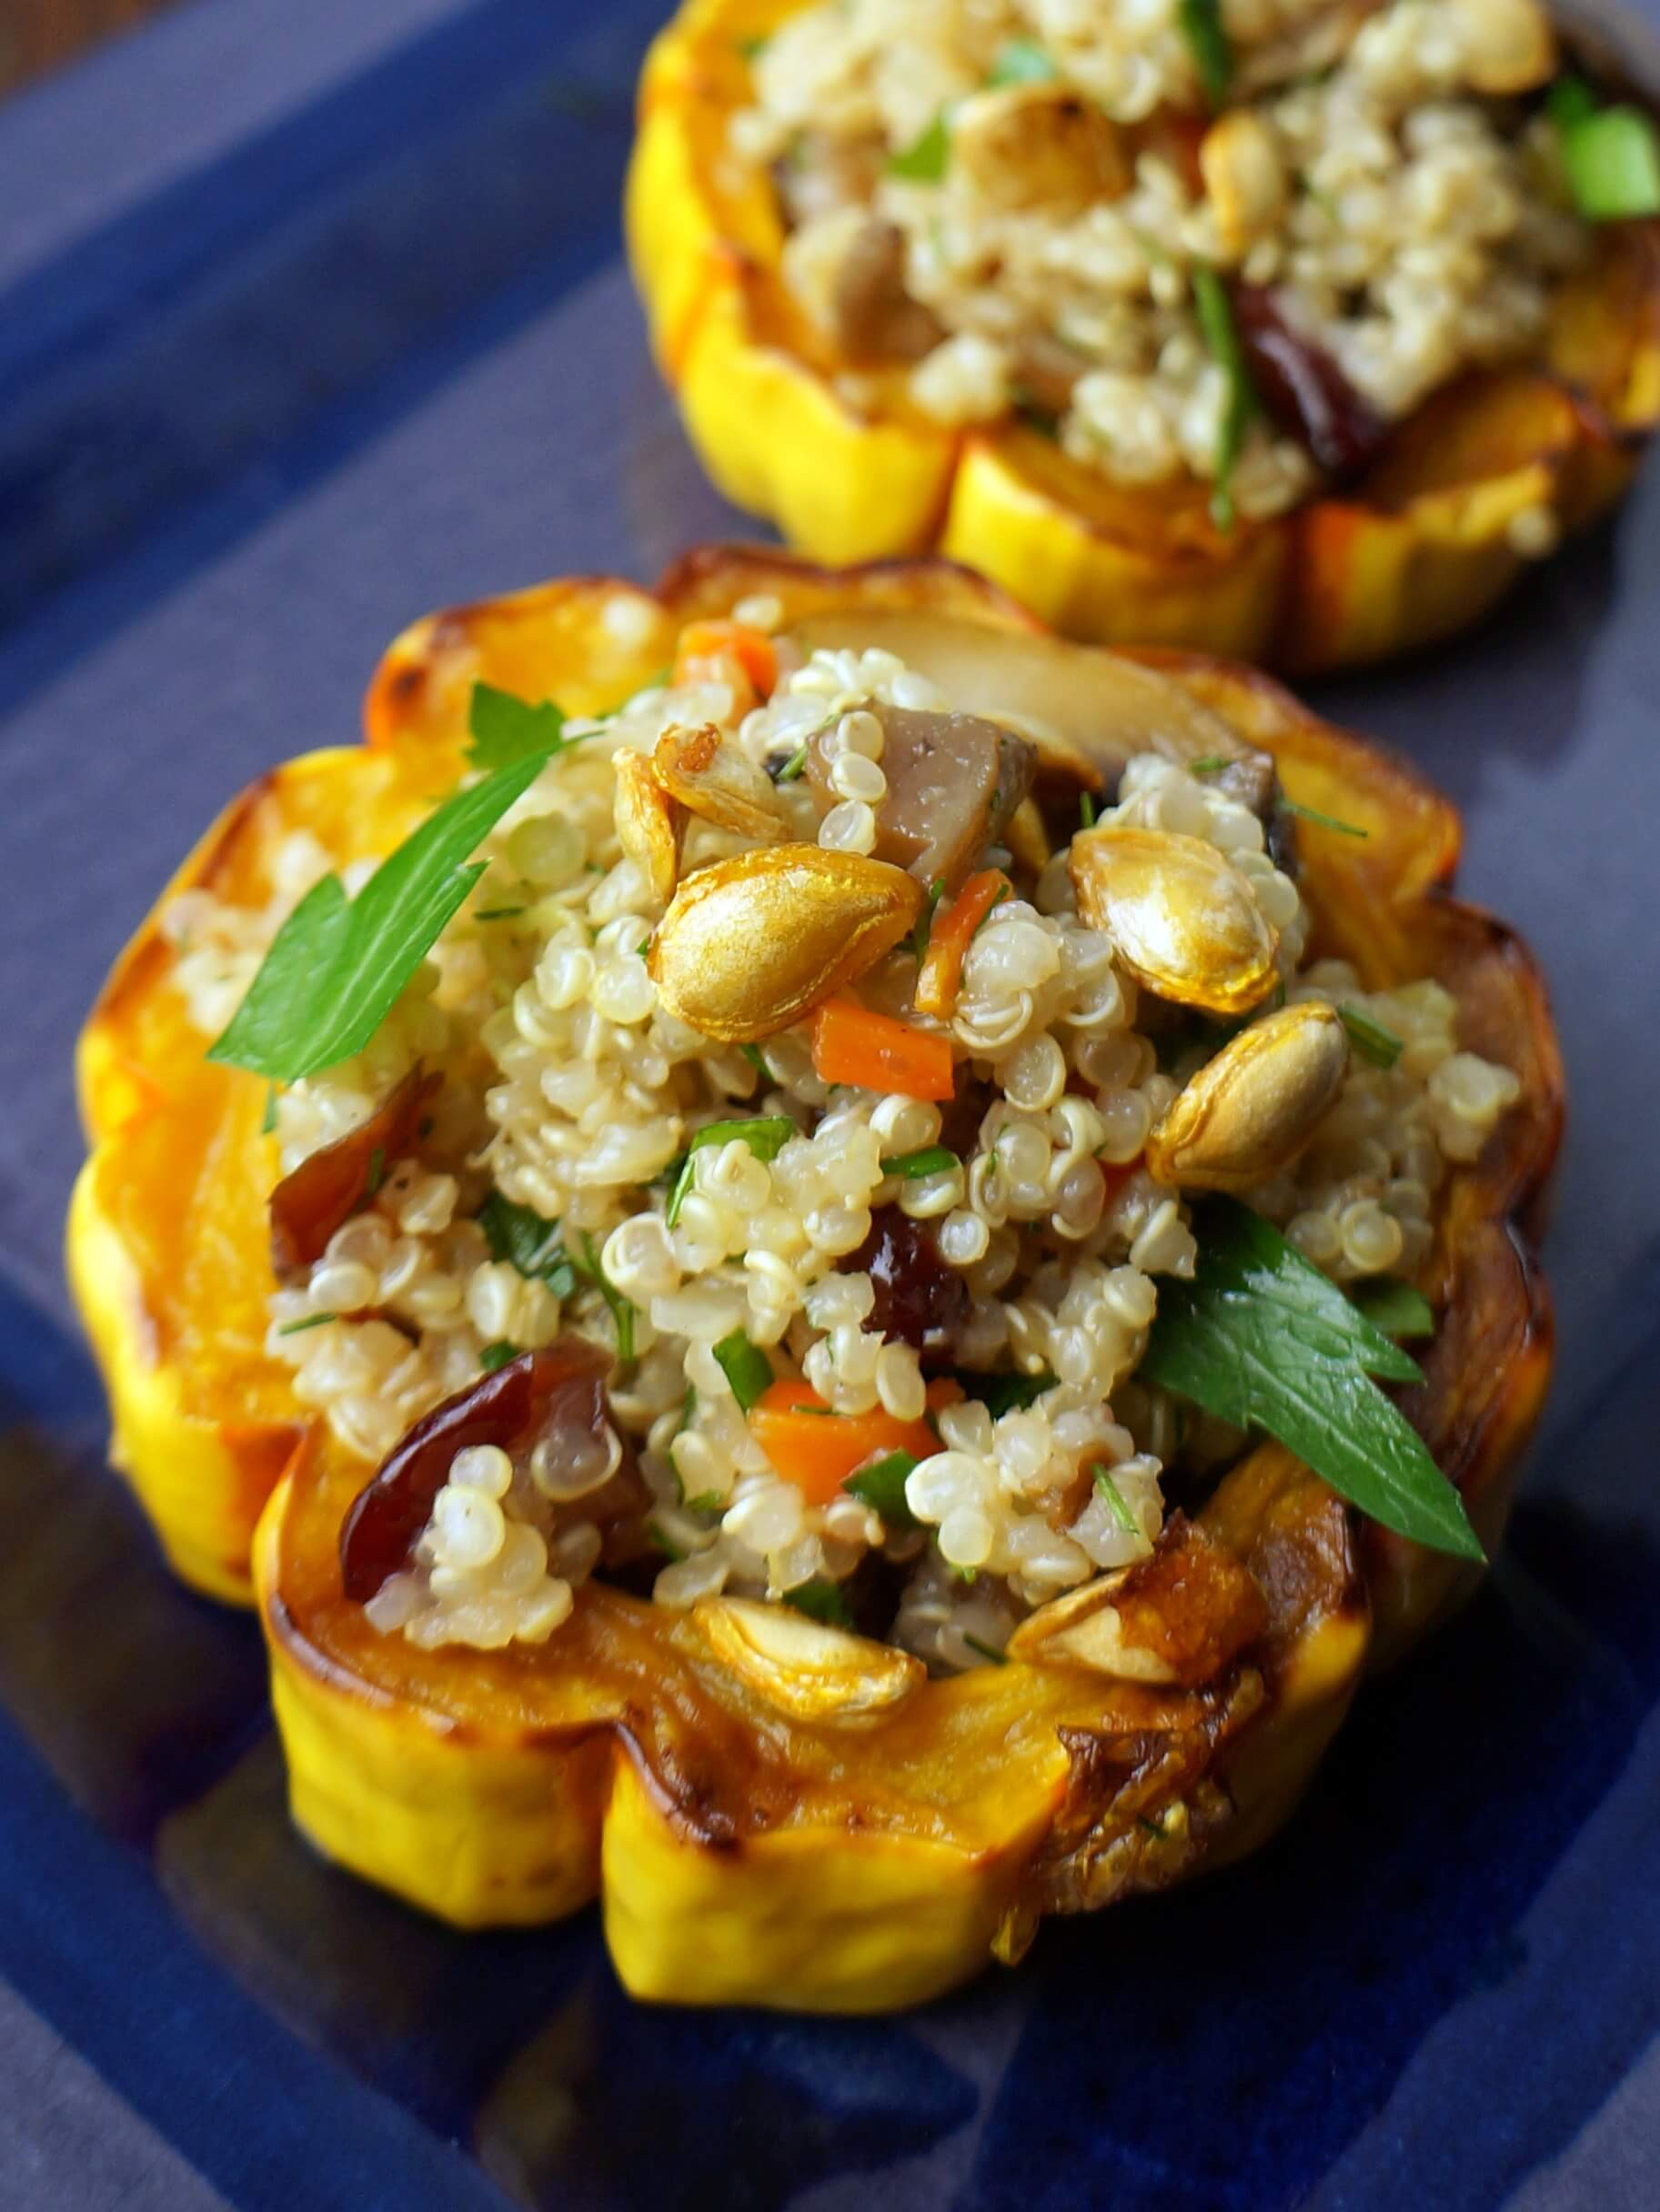 Roasted Squash Rings Stuffed with Quinoa Mushroom Salad